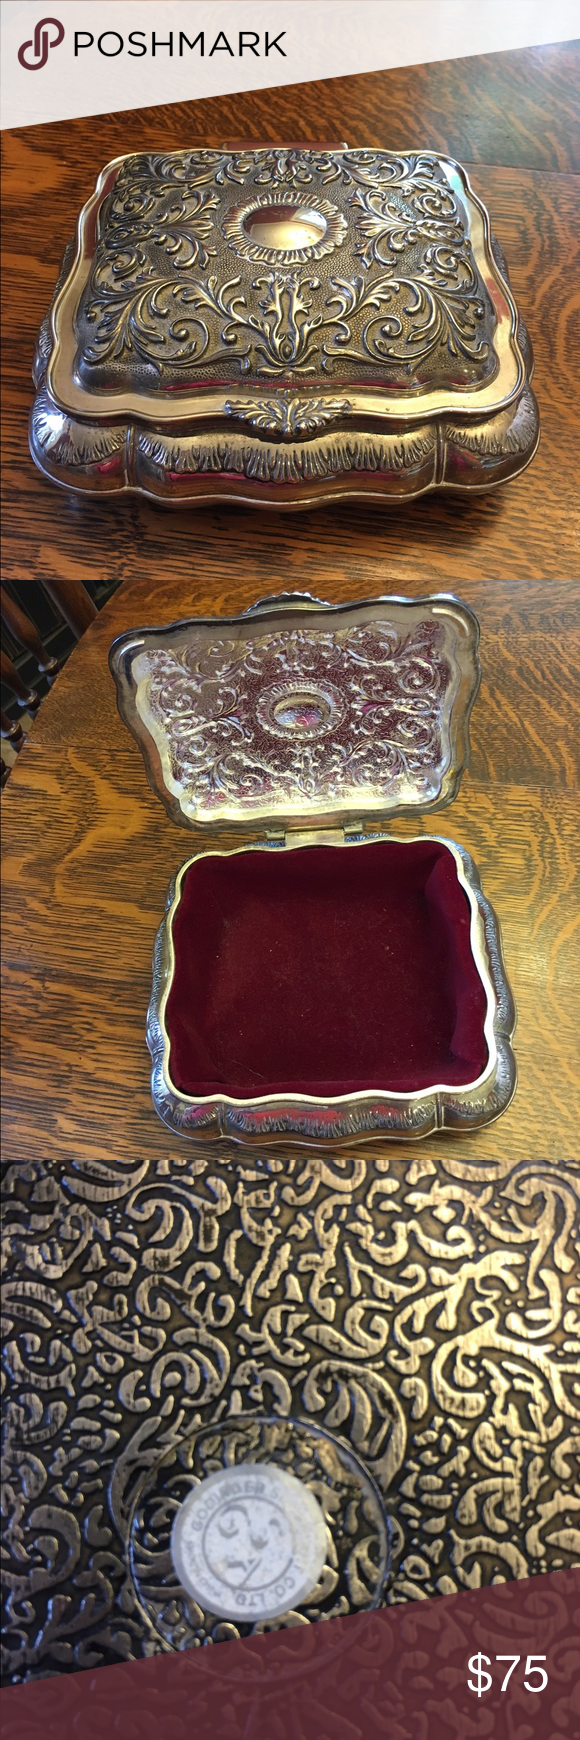 Vintage Godinger Silver Art Co Jewelry Box Gorgeous silver played